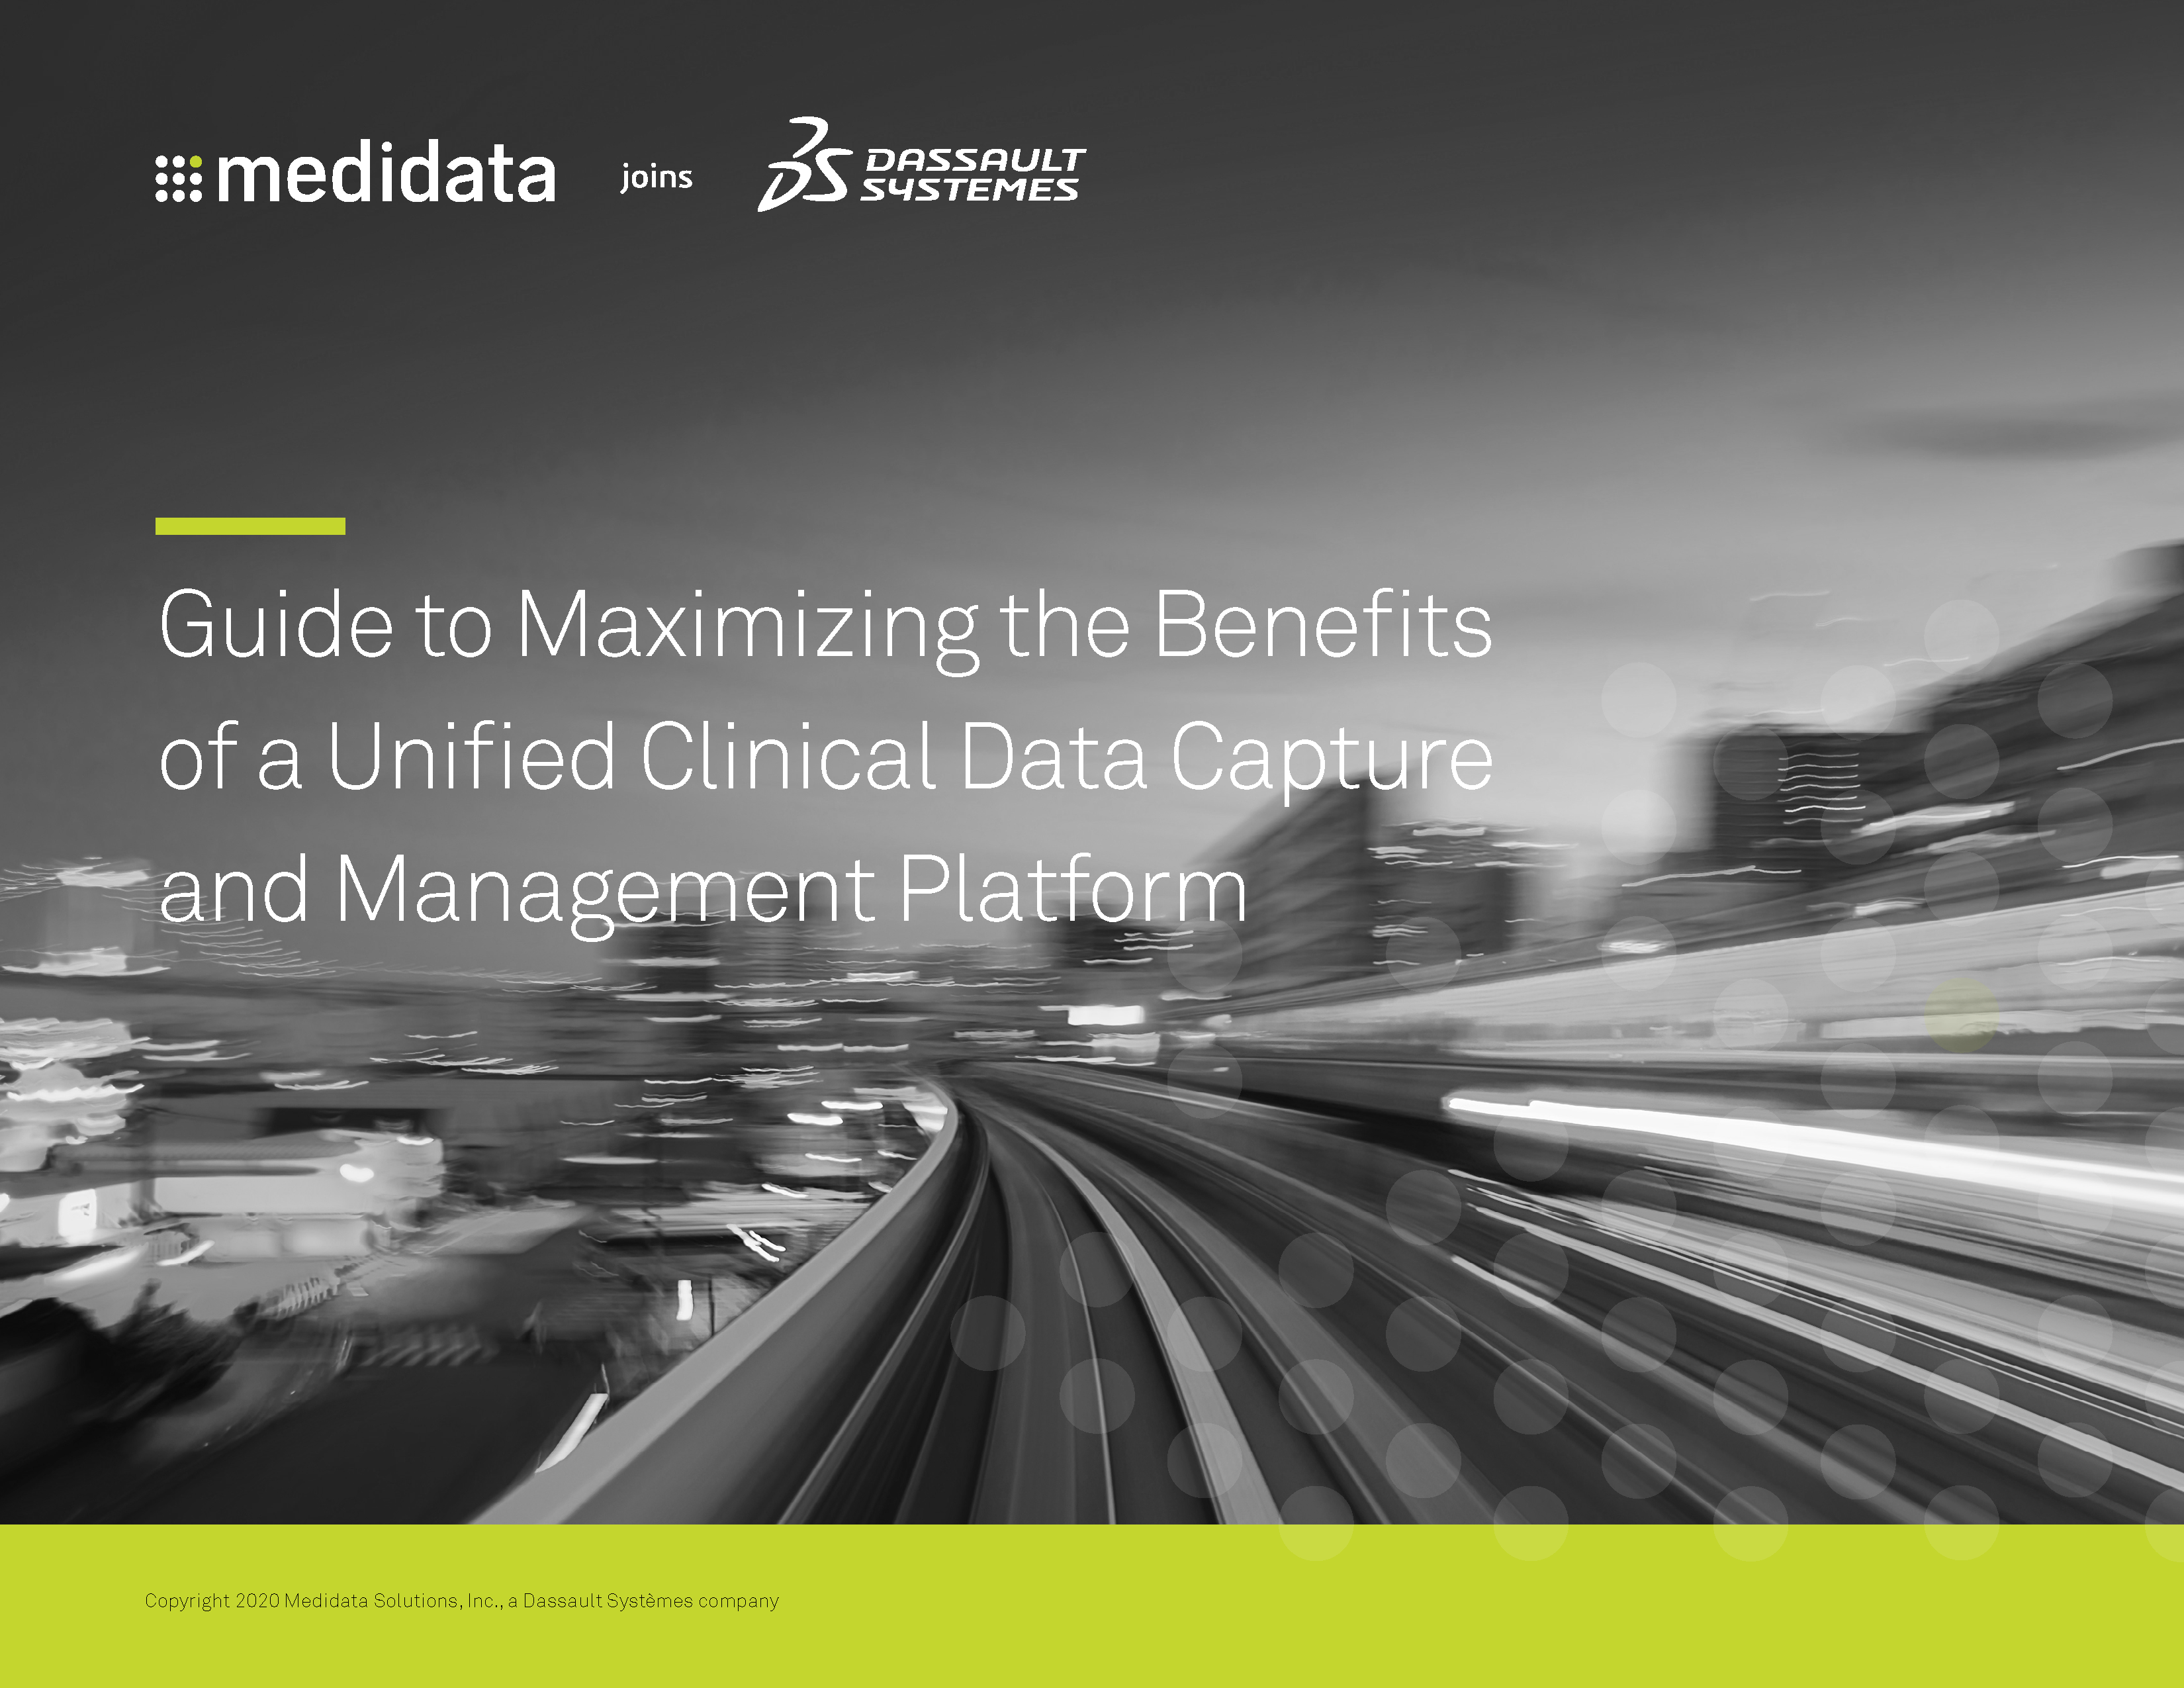 Guide to Maximizing the Benefits of a Unified Clinical Data Capture and Management Platform